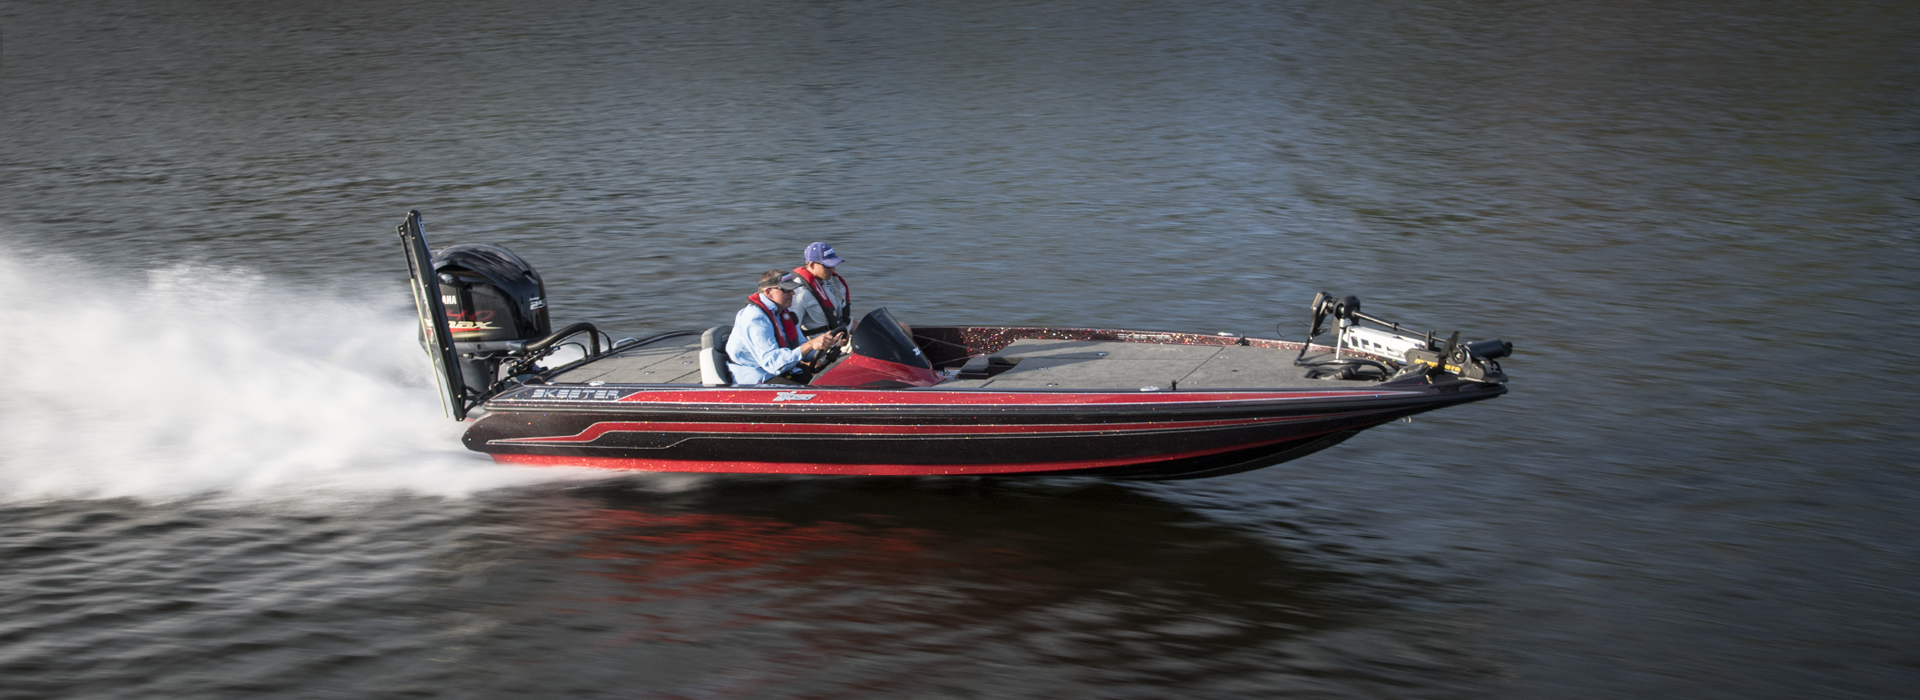 2017 Skeeter Zx250 Bass Boat For Sale